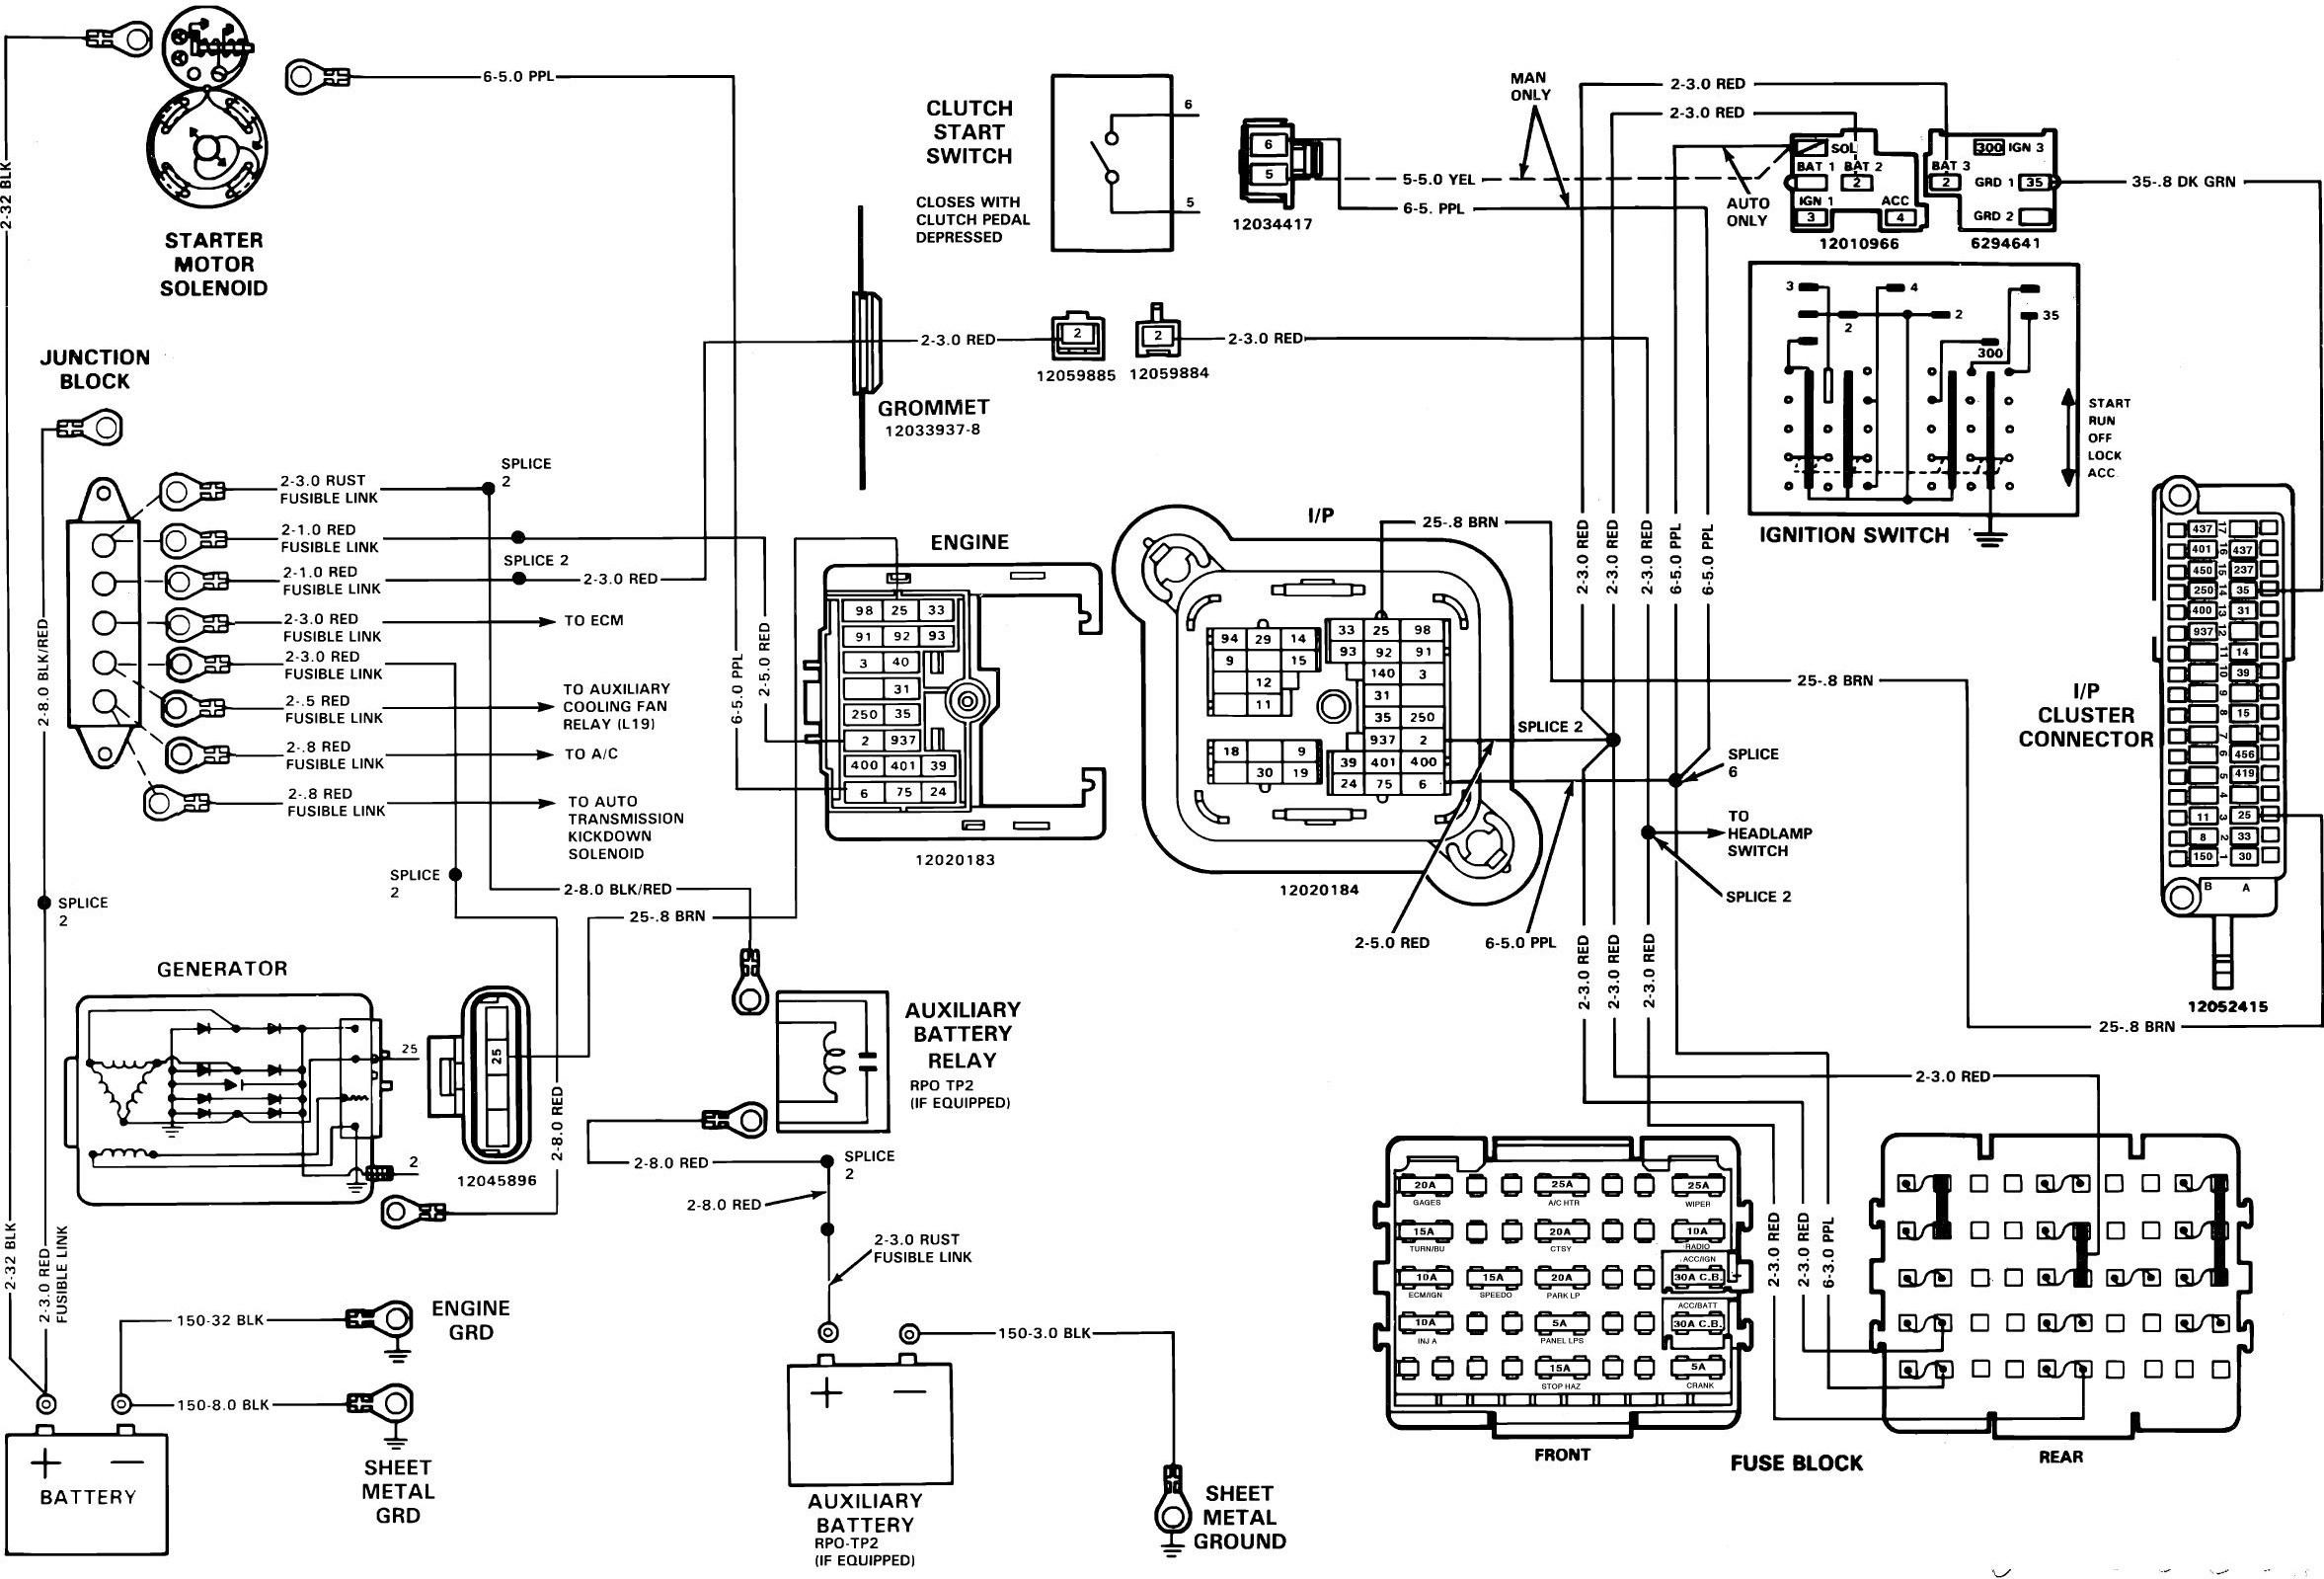 Jaguar X Type Stereo Wiring Diagram. Dodge 2004 Stereo